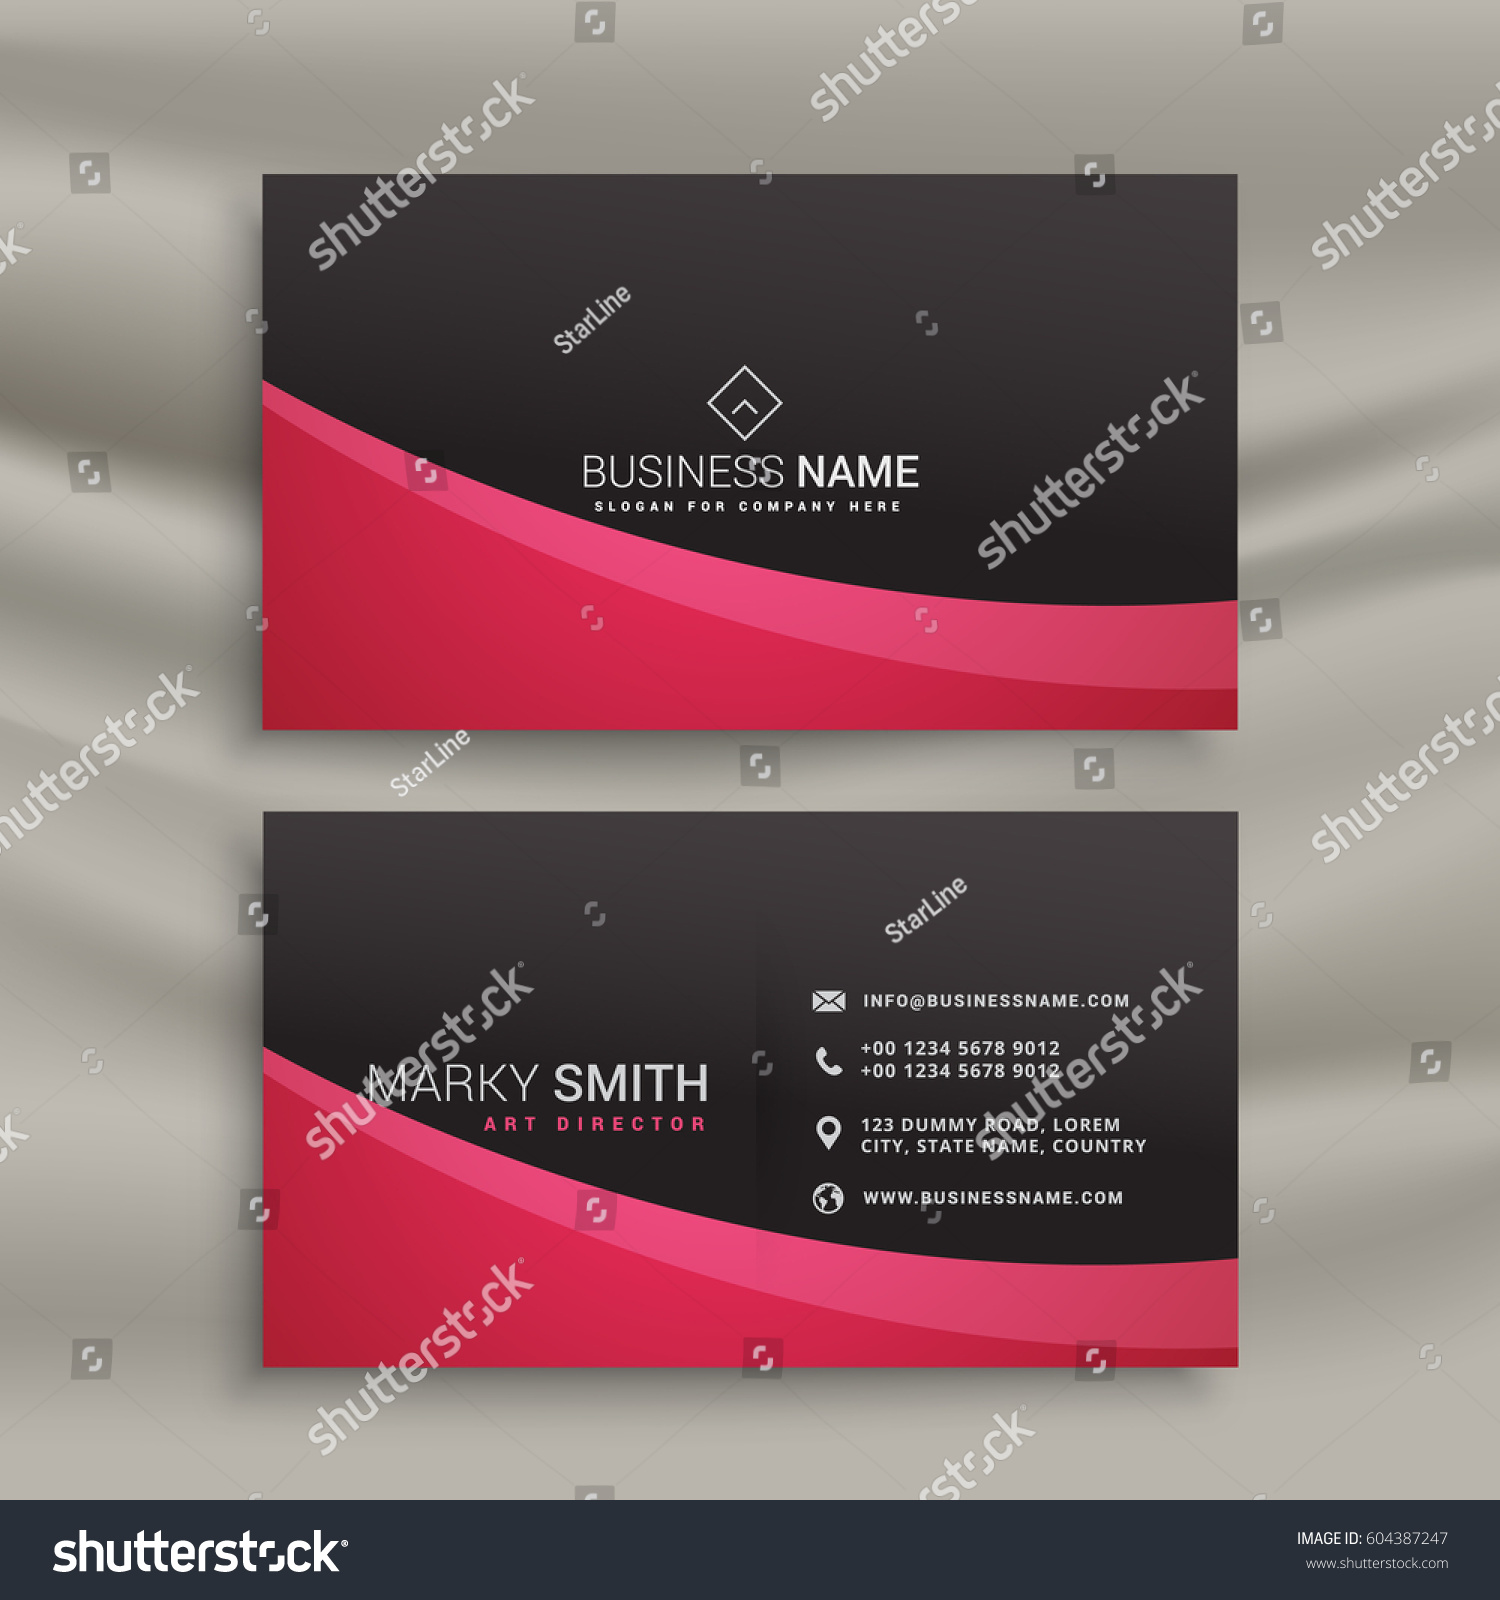 Dark Business Card Design Wavy Shape Stock Vector 604387247 ...